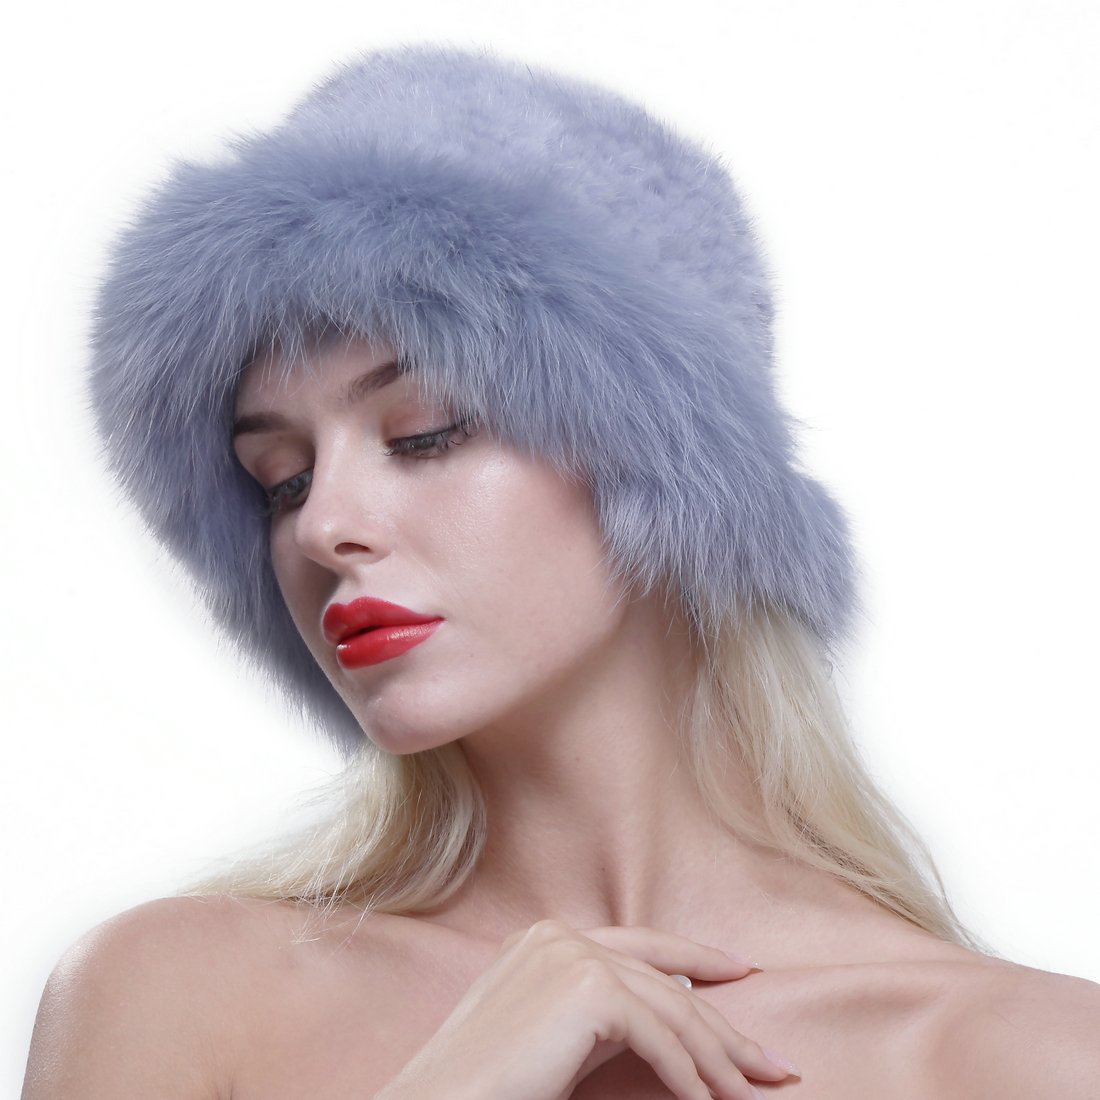 URSFUR Genuine Fox Fur Roller Hat with Knit Mink Top Sapphire by URSFUR (Image #2)